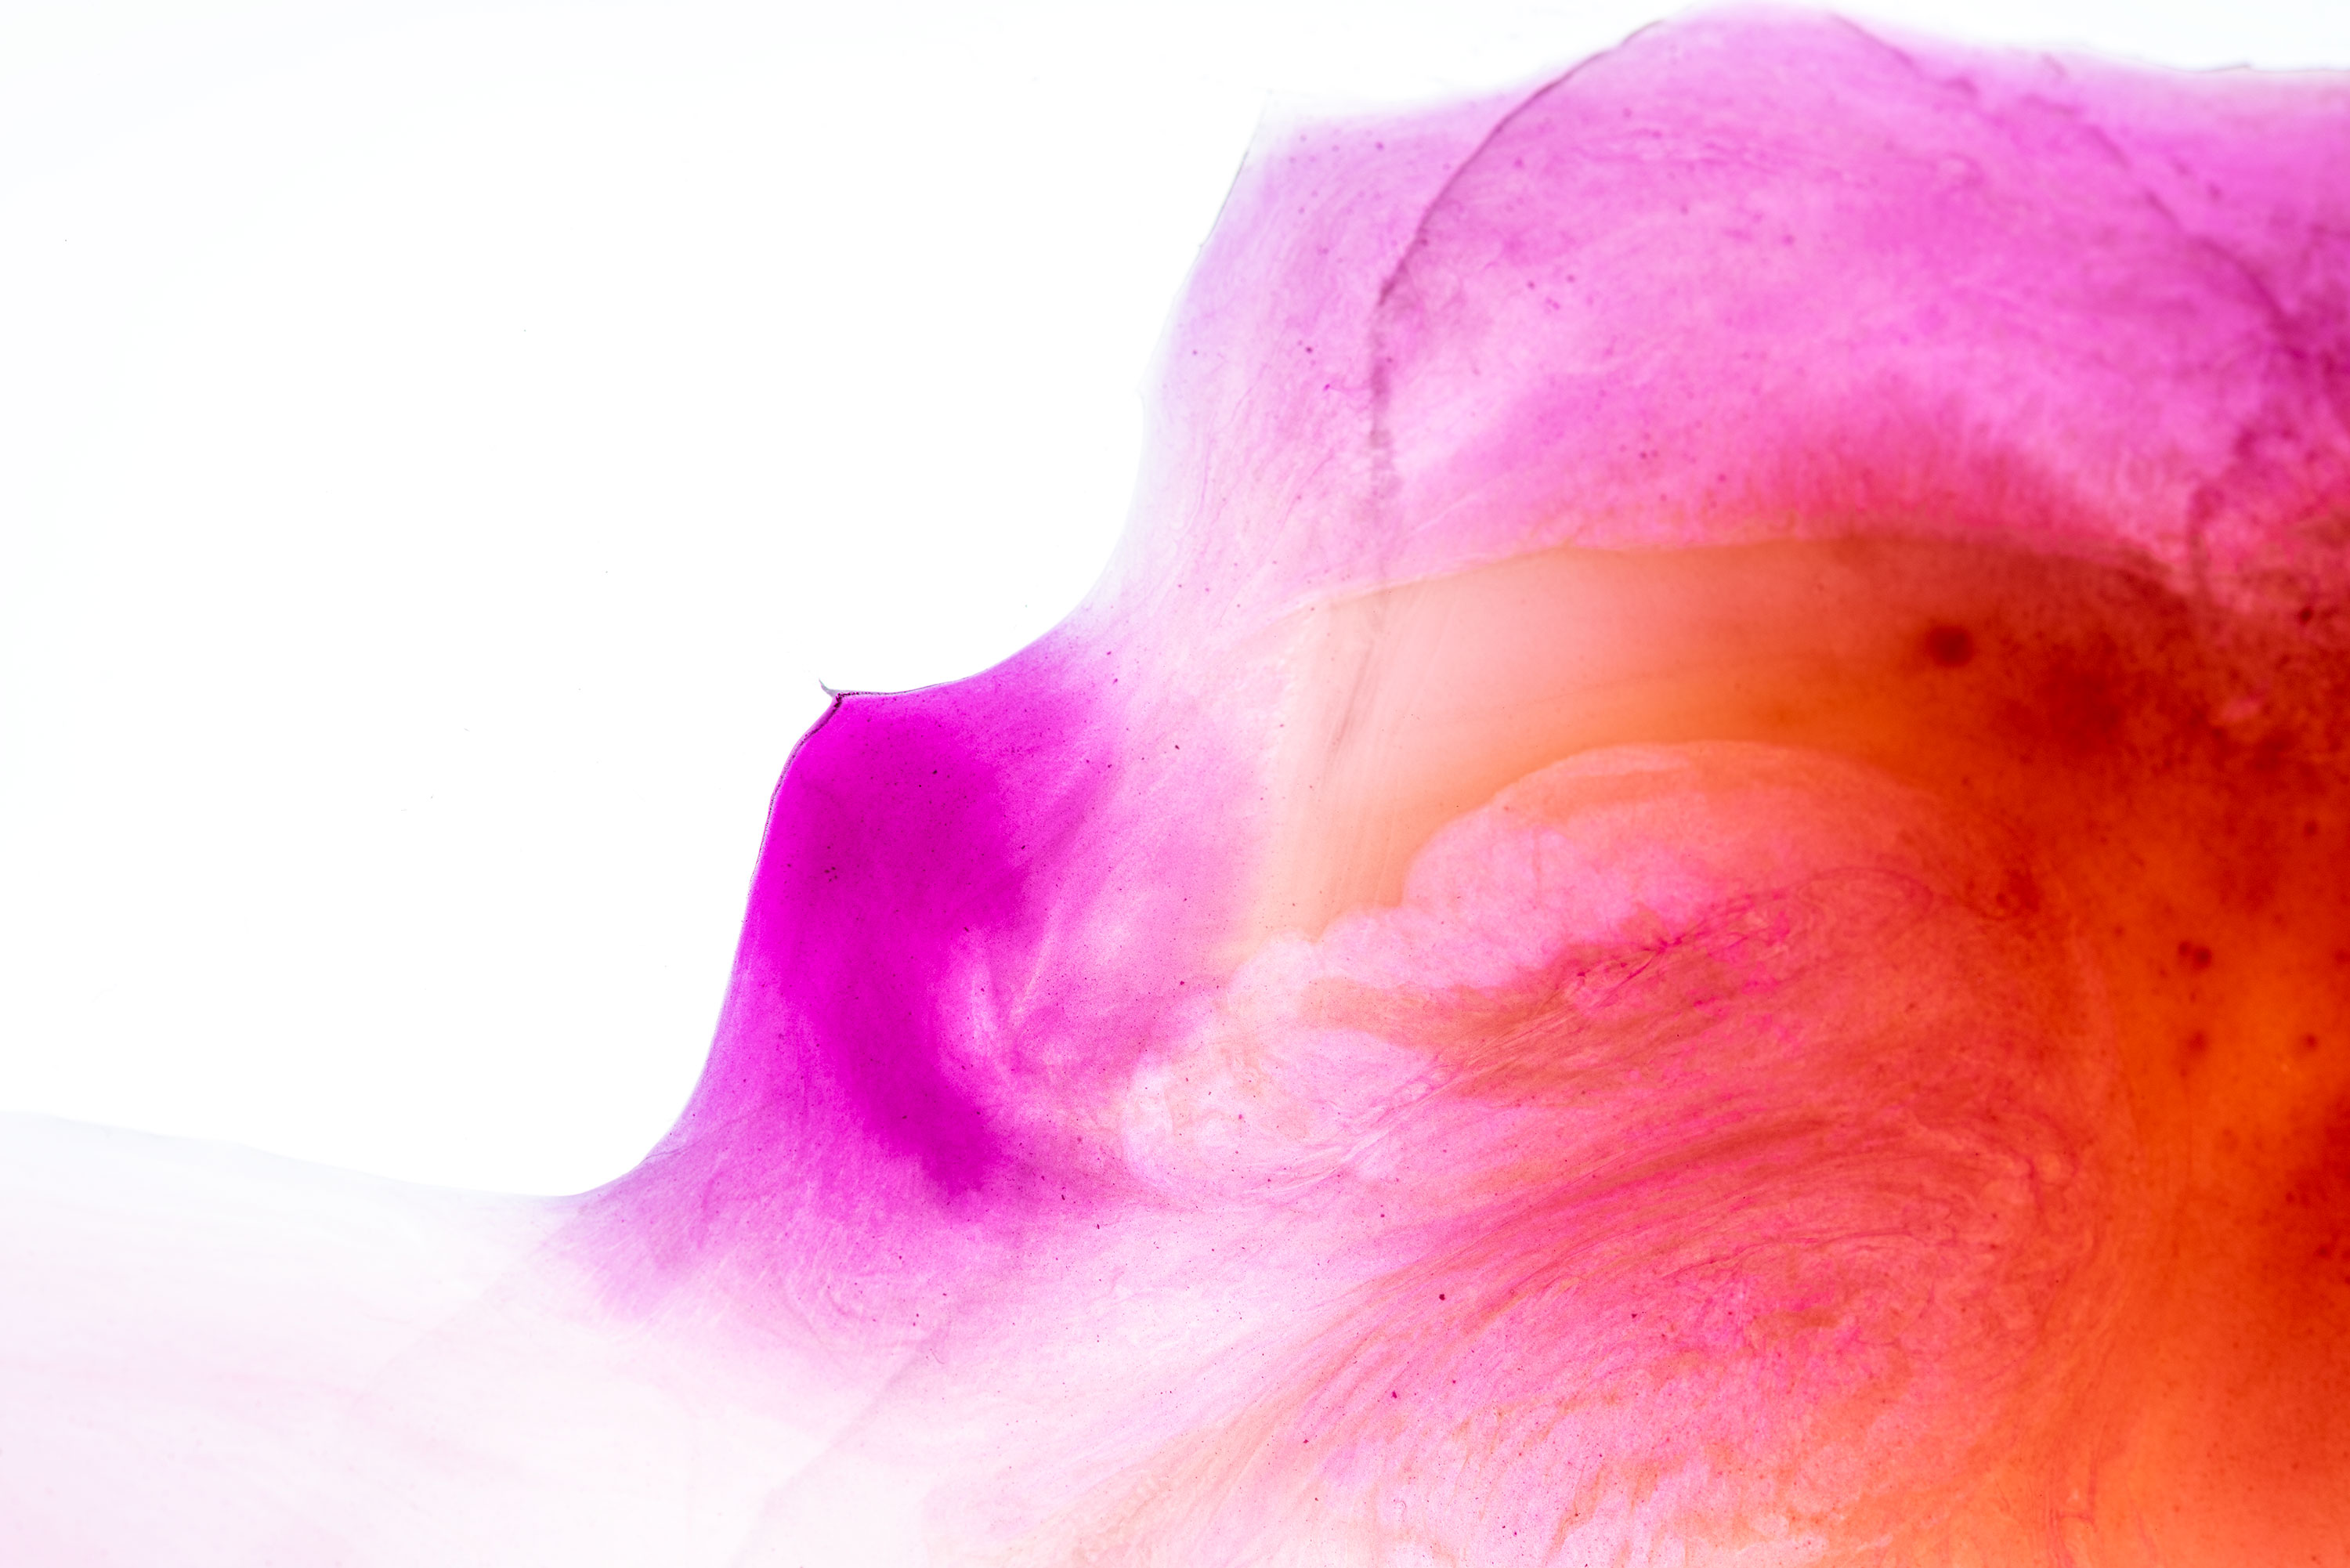 Abstract photography made of orange and pink watercolour. Image by Jennifer Esseiva.